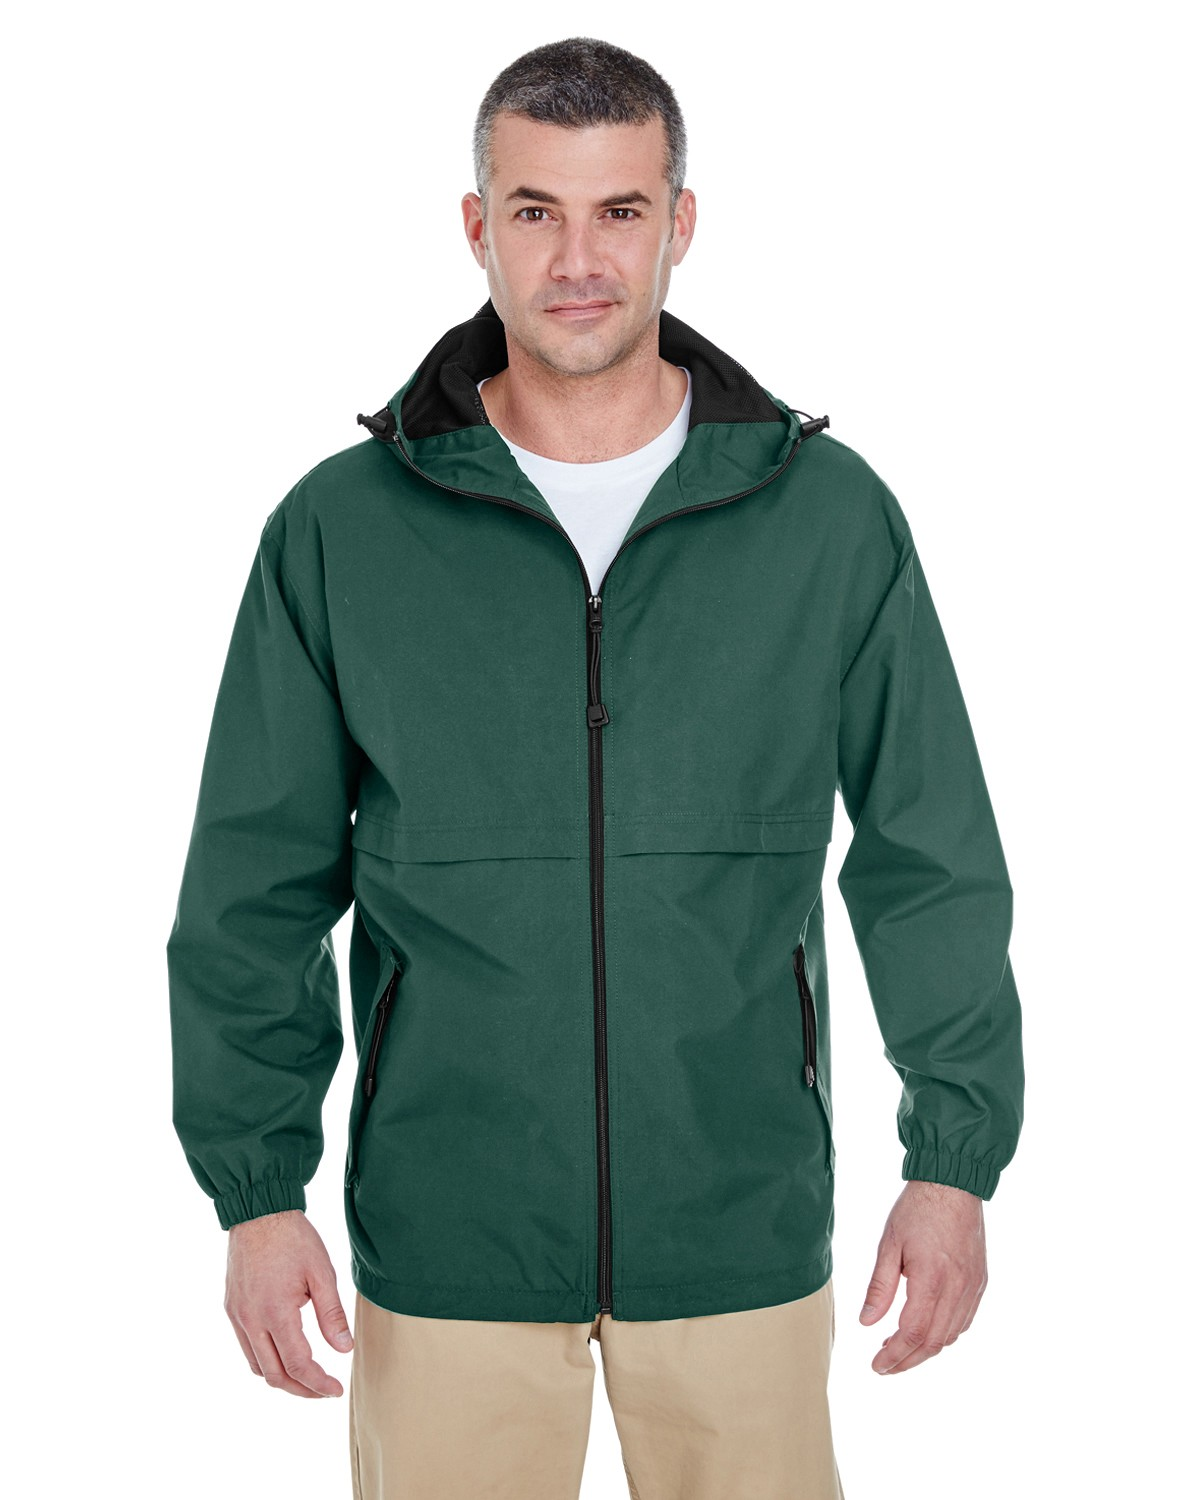 8908 UltraClub FOREST GREEN